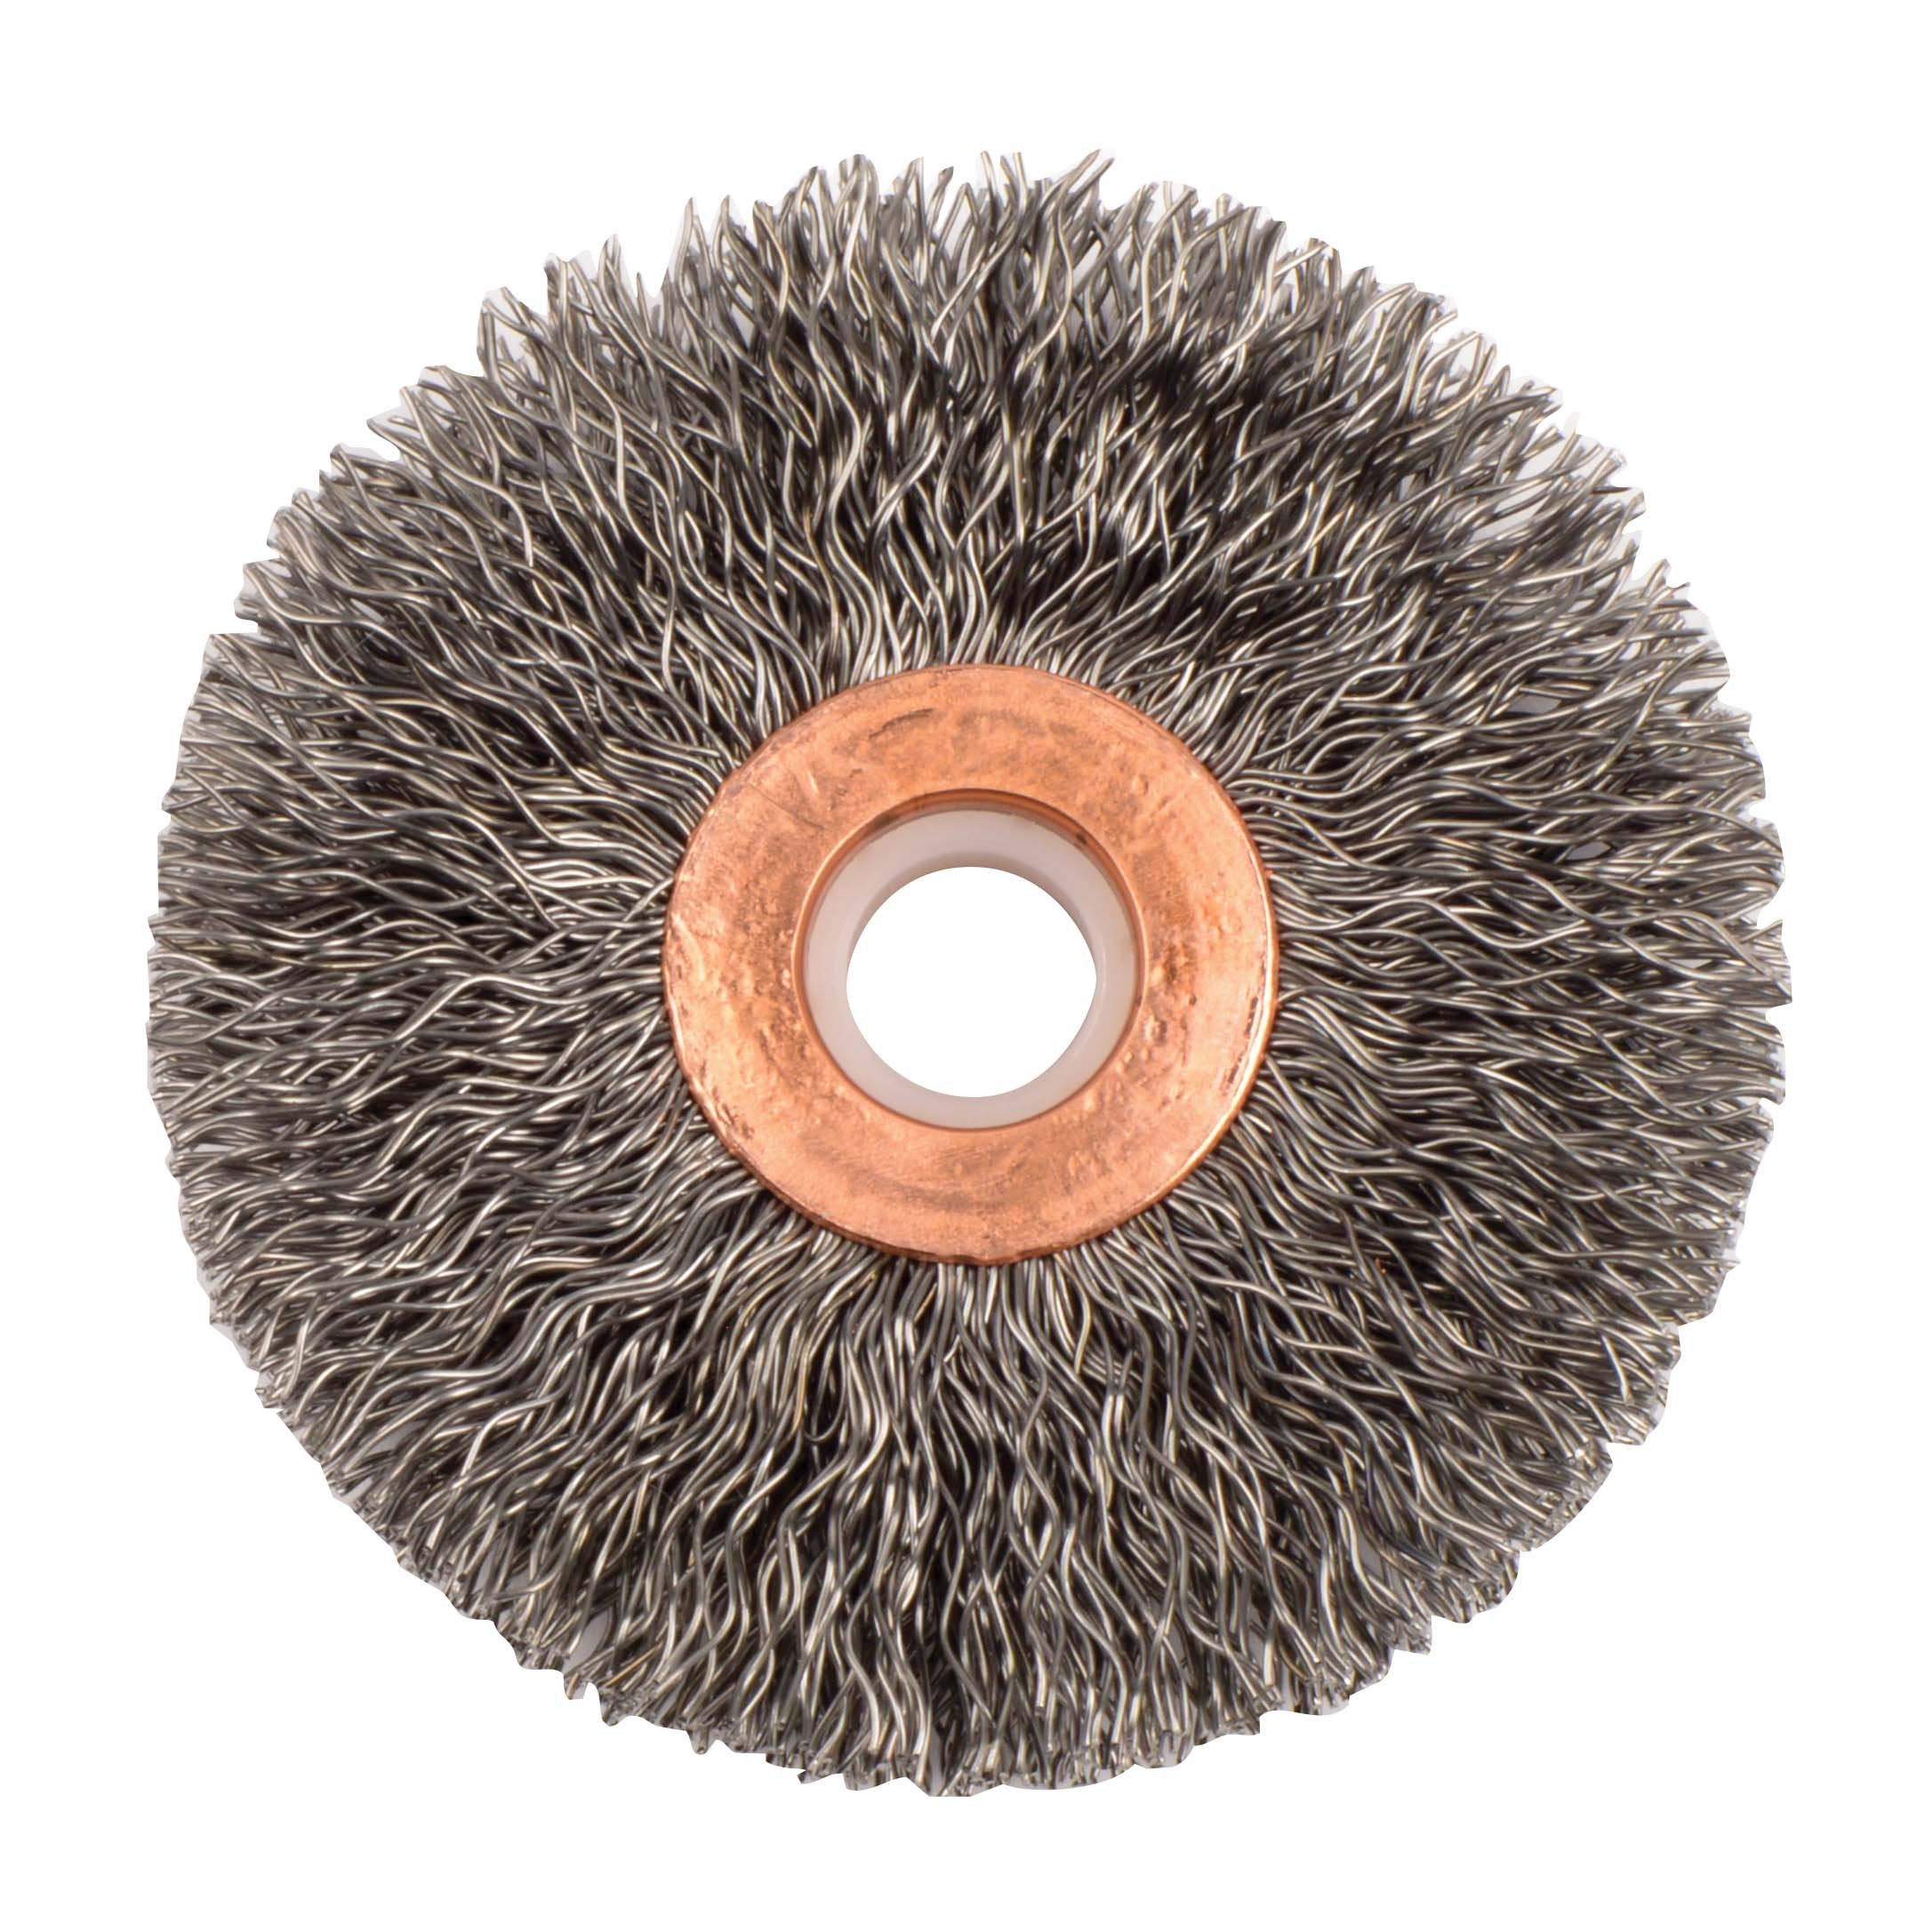 Weiler 15523 Crimped Wire Wheel, 2-1/2'' Small Diameter, 0.14'' Steel Fill, 1/2''-3/8'' Arbor Hole (Pack of 10)